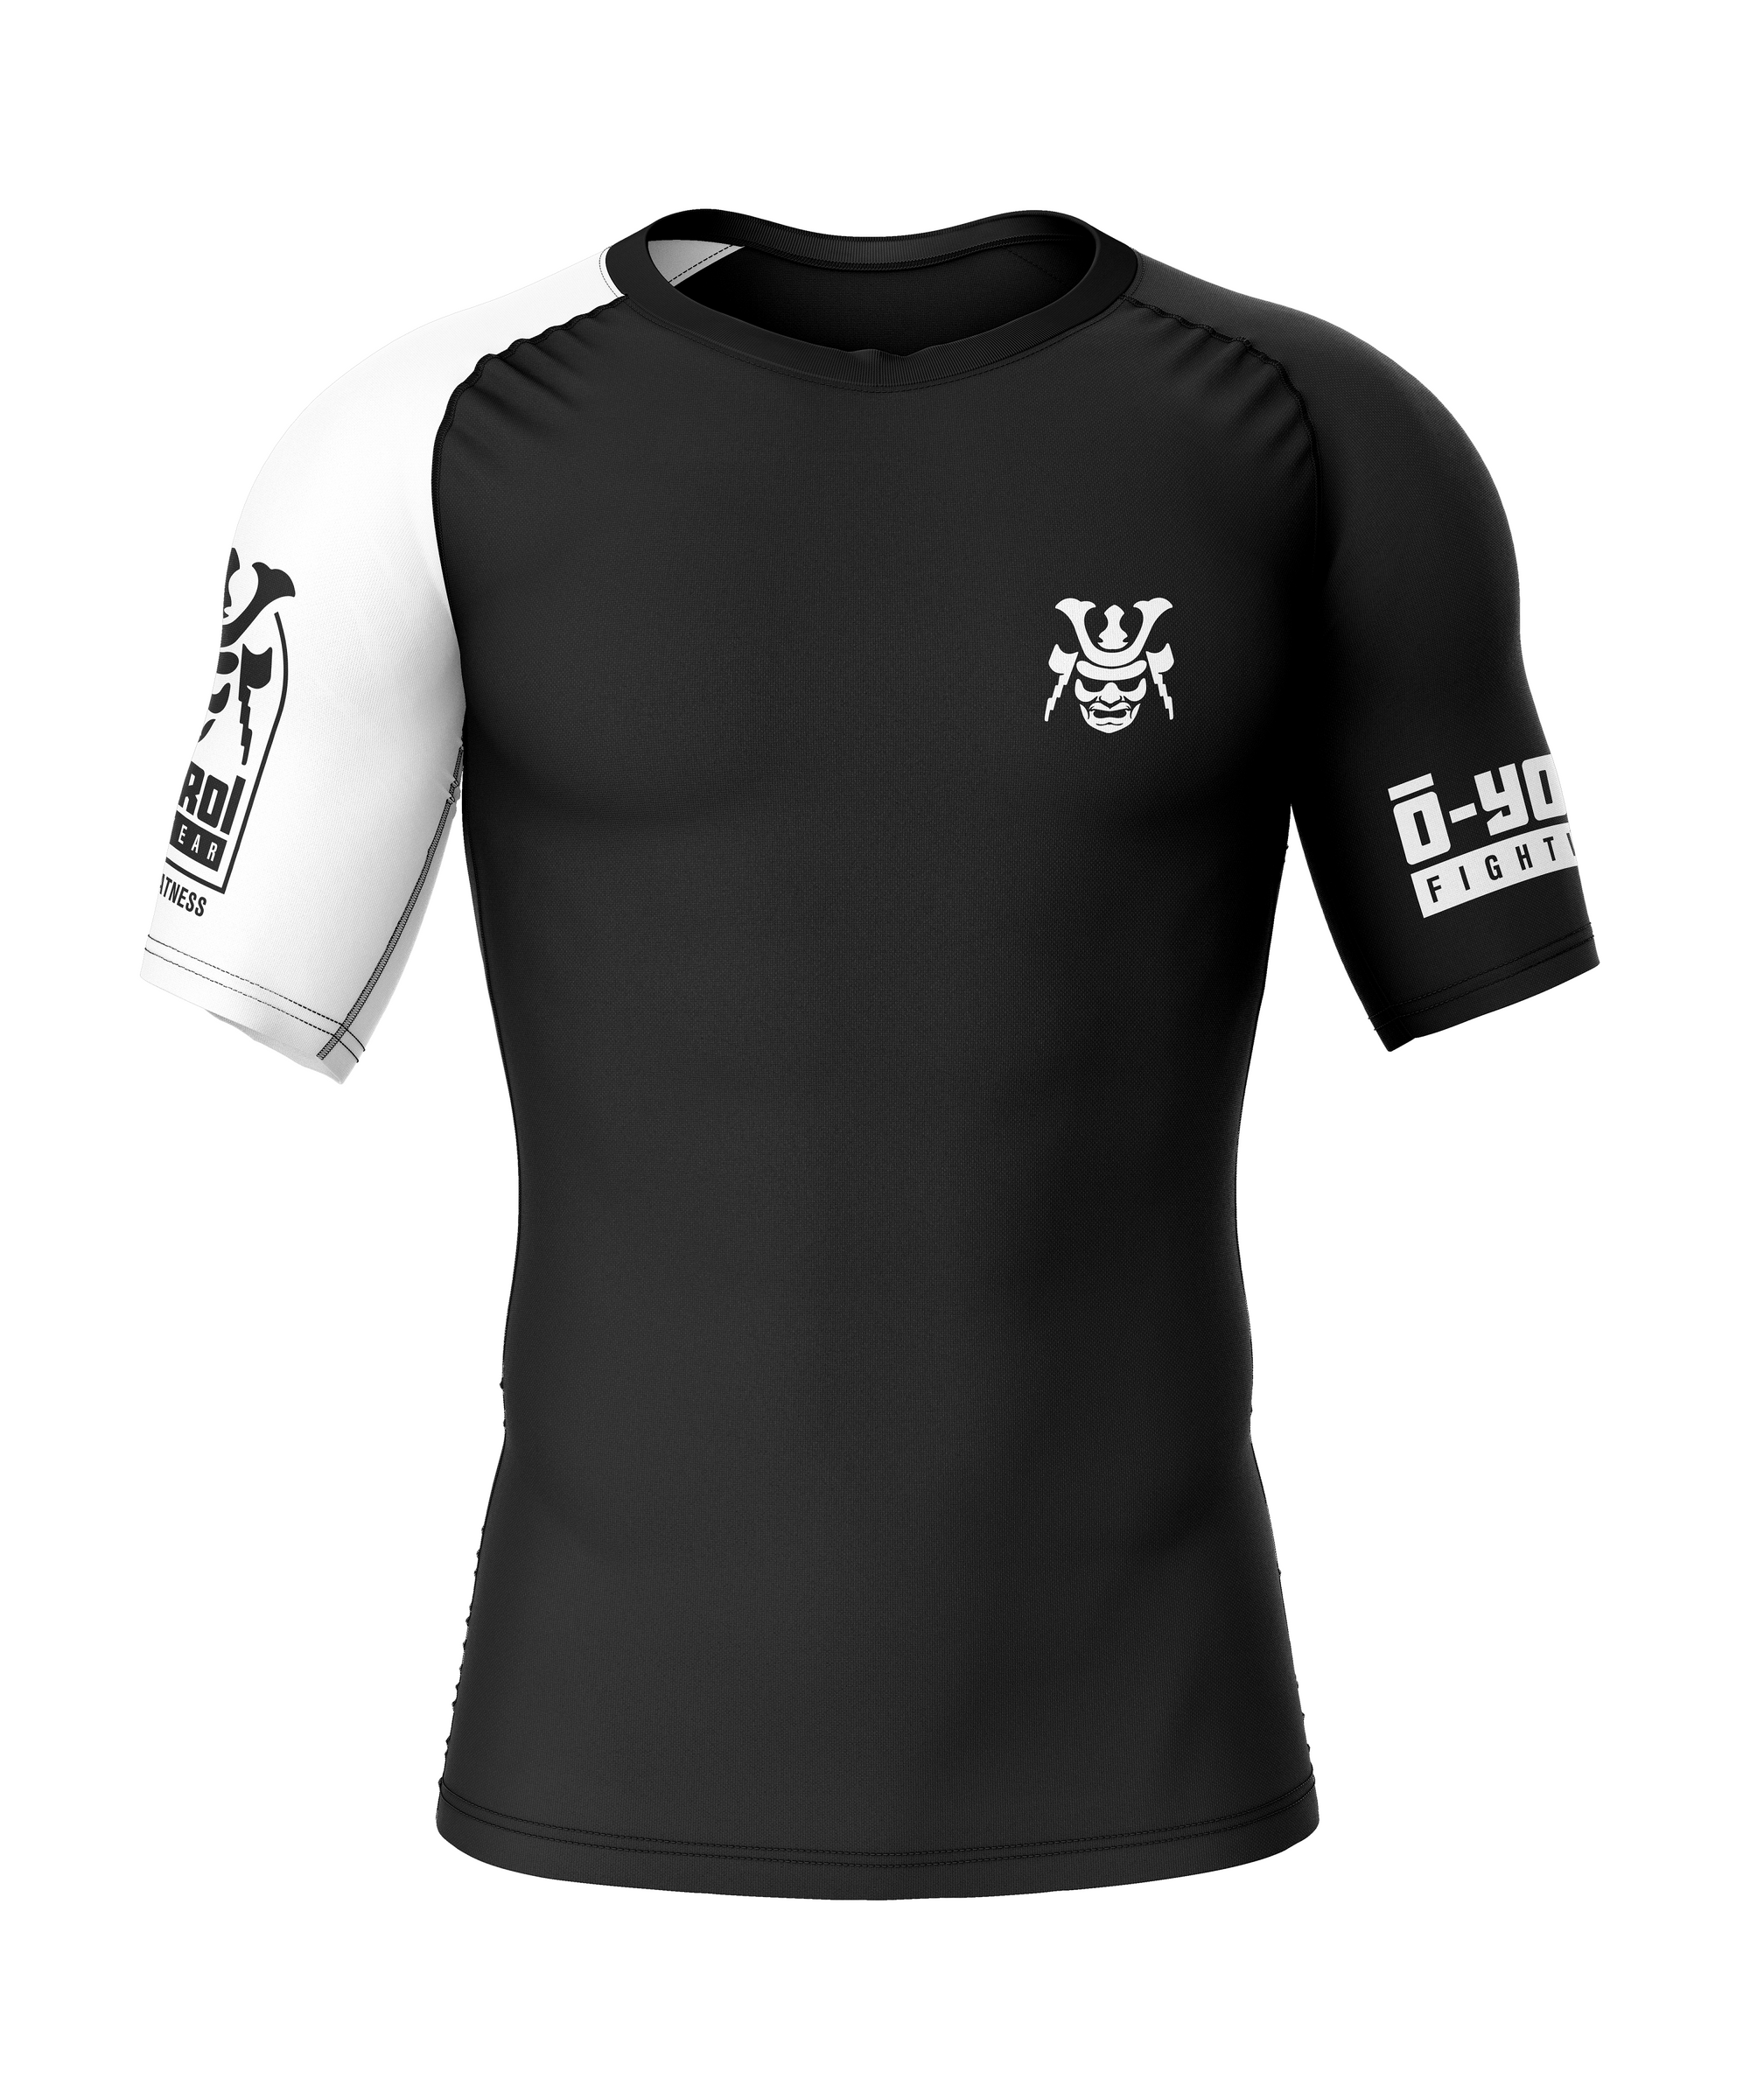 Women Rashguard Black and White S/S - favuke.com